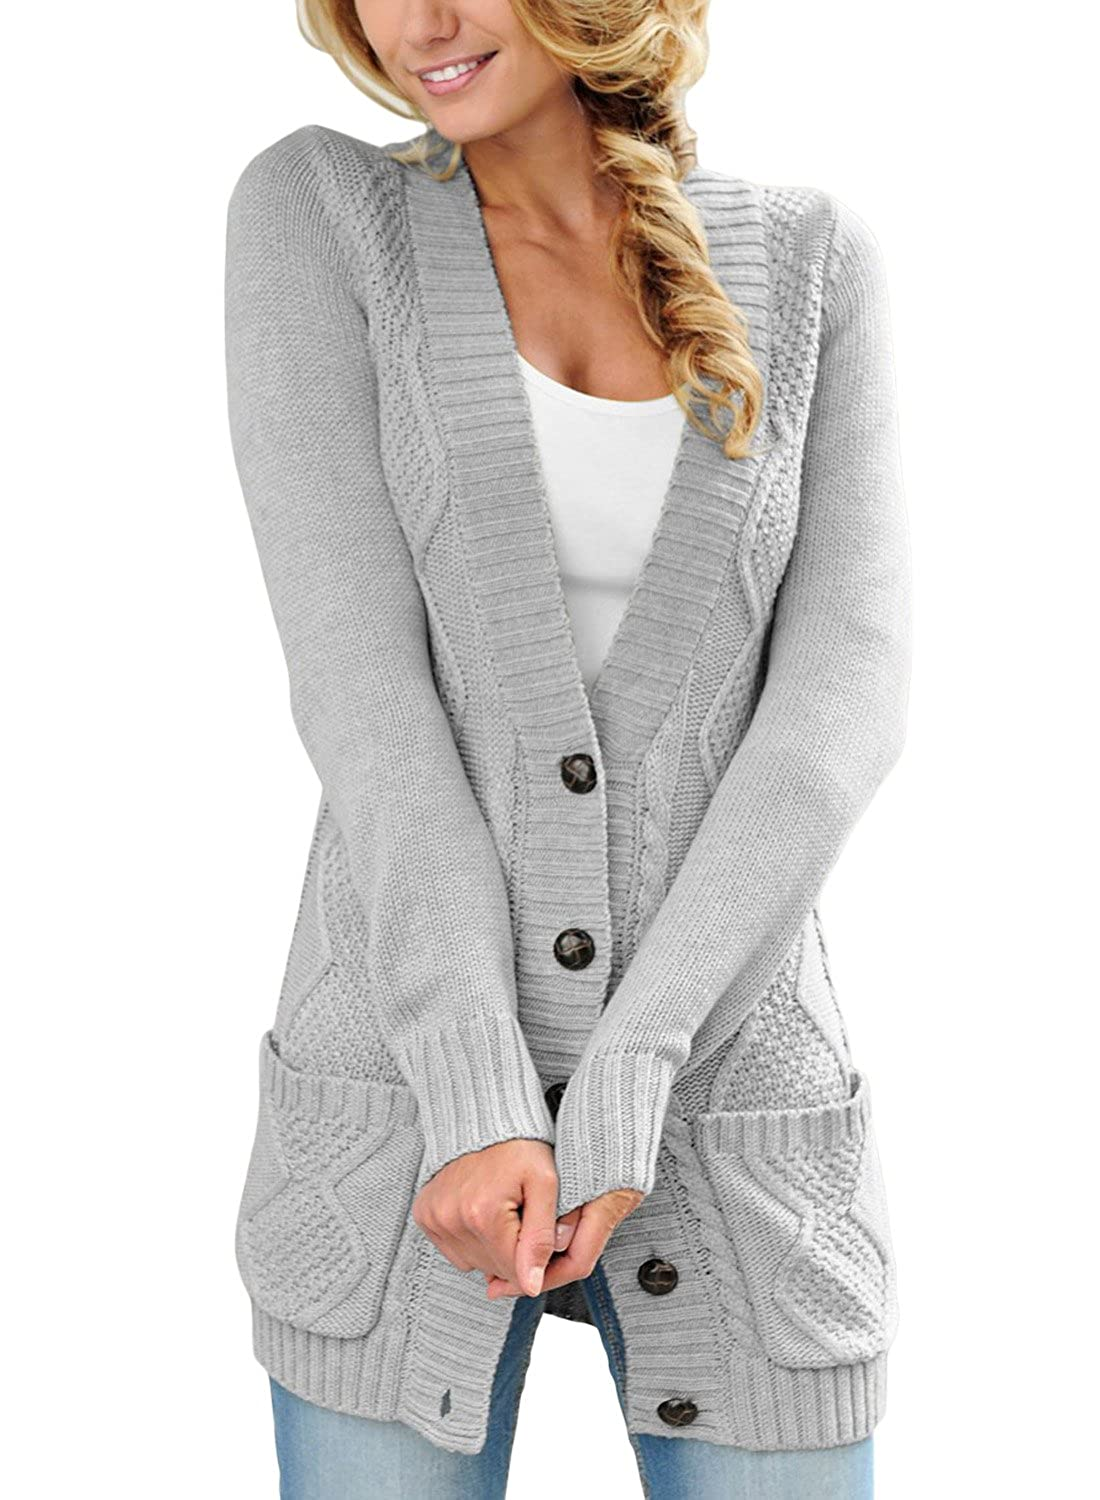 LOSRLY Women Open Front Cabel Knit Cardigan Button Down Long Sleeve Sweater Coat Outwear with Pockets YL27837